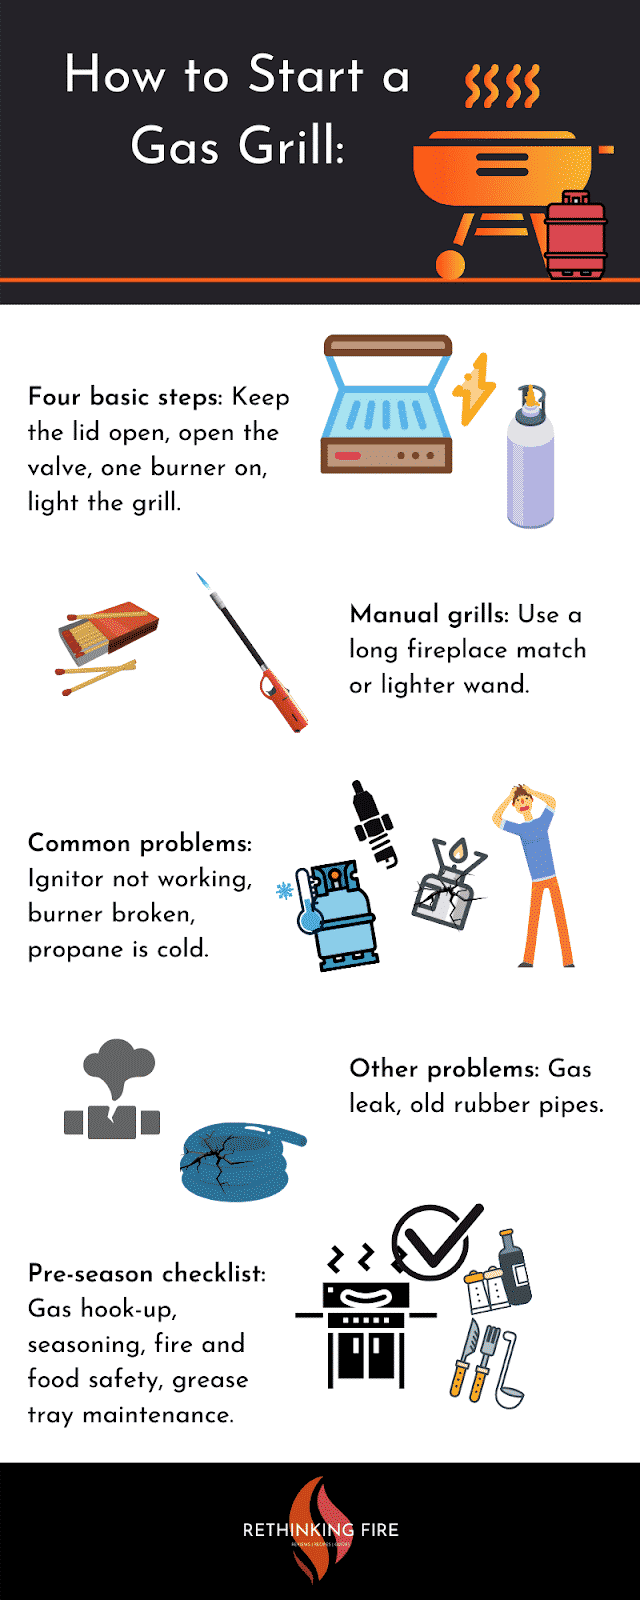 How to Start a Gas Grill infographic